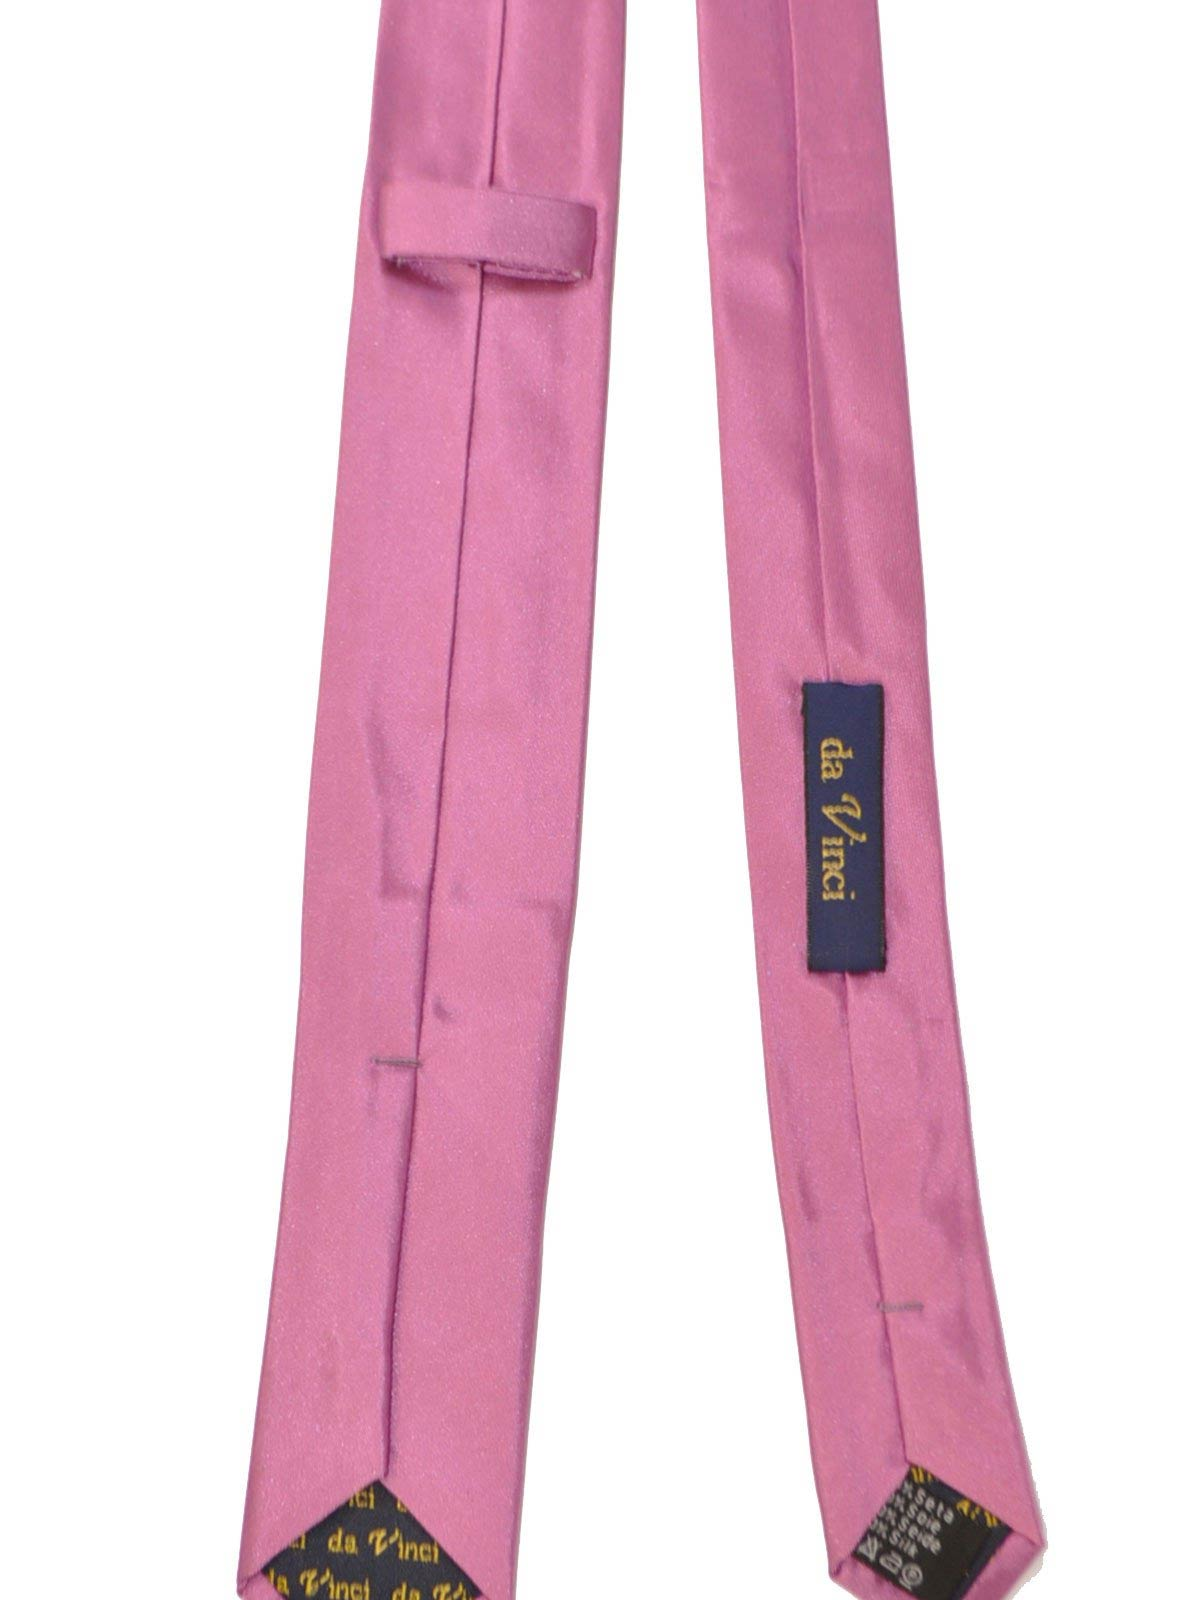 4b53a2b3beae Da Vinci Silk Skinny Tie Solid Dust Pink - Hand Made in Italy - FINAL SALE